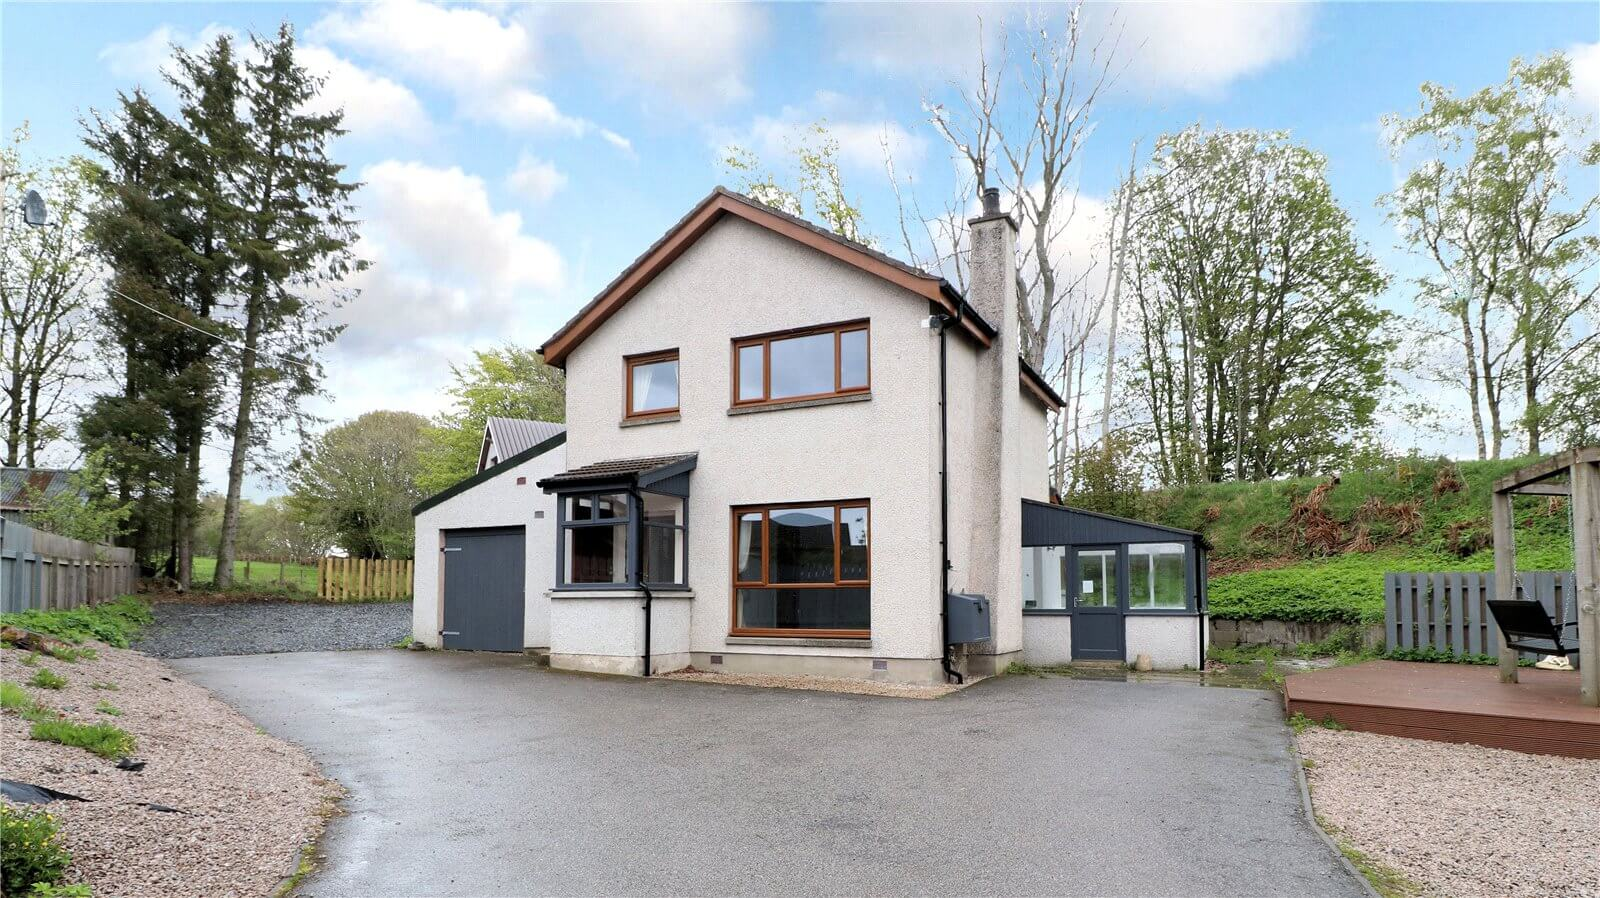 Our latest properties for sale and to let (16th May 2019)